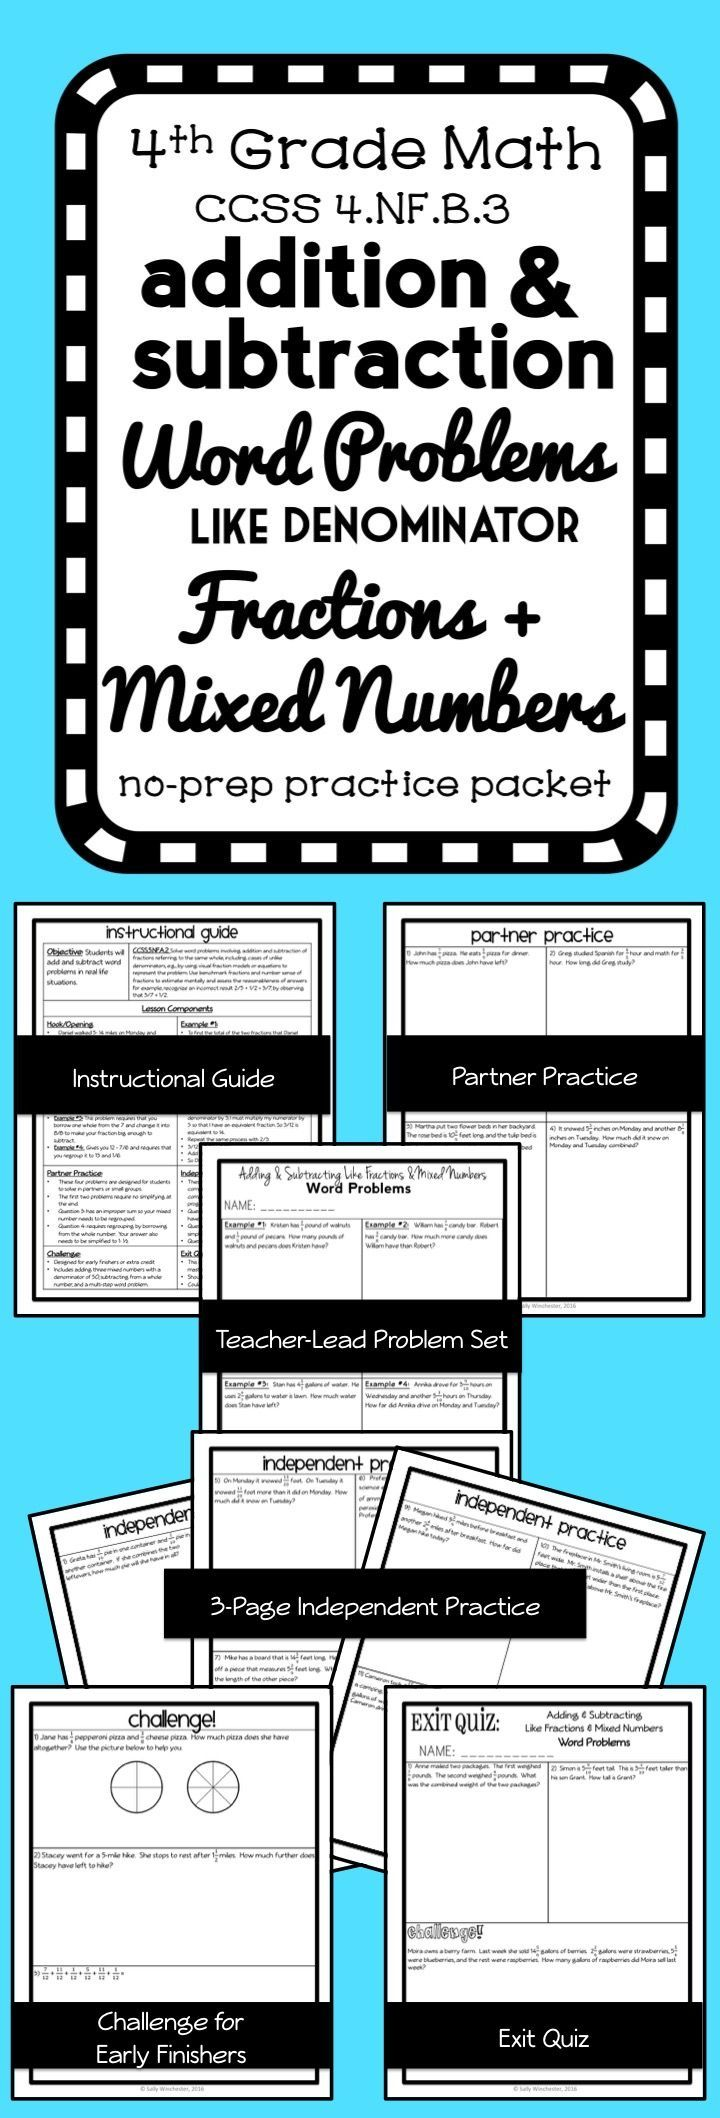 Adding And Subtracting Fractions With Like Denominators Word Problems Complete 8 Page Lesson Pa Fraction Word Problems Subtraction Word Problems Word Problems Lesson adding and subtracting